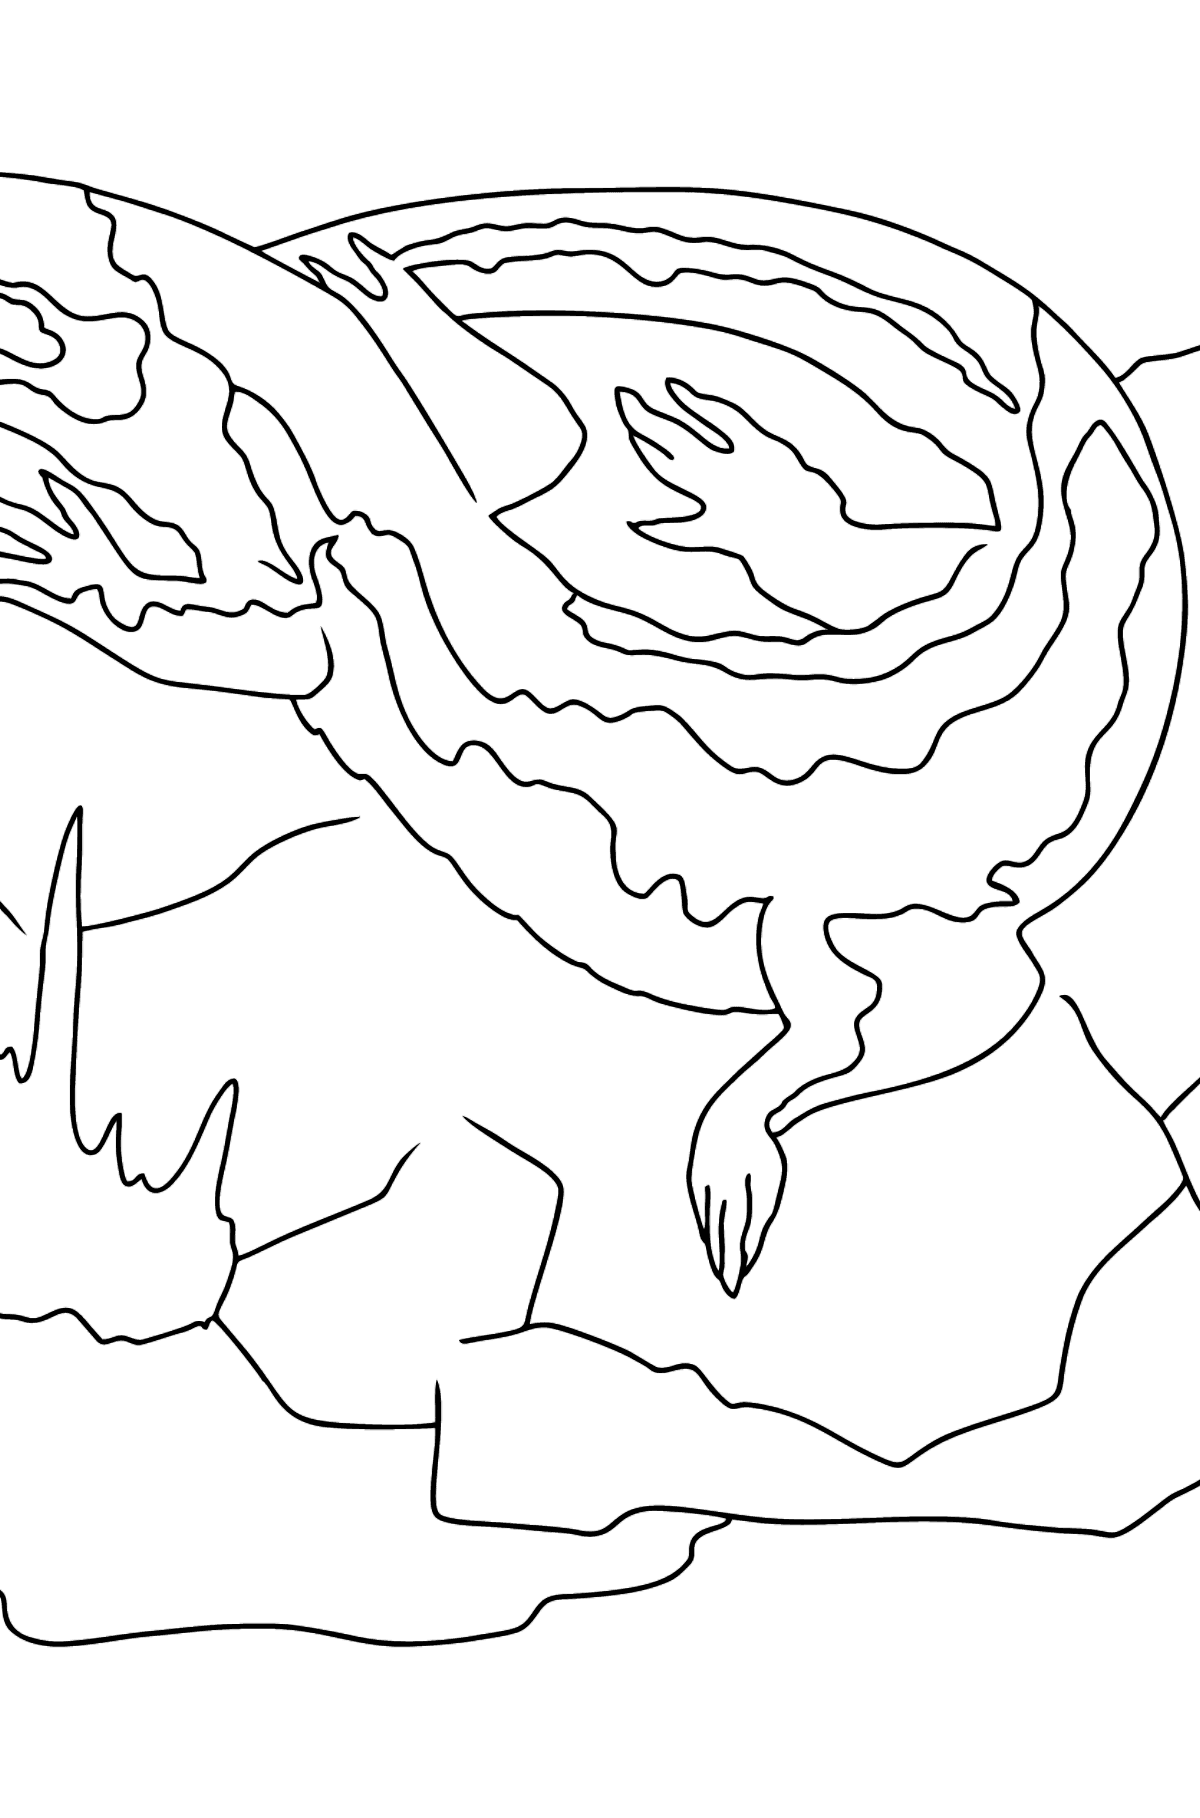 A Lizard is Soaking up the Sun Coloring Page - Coloring Pages for Kids